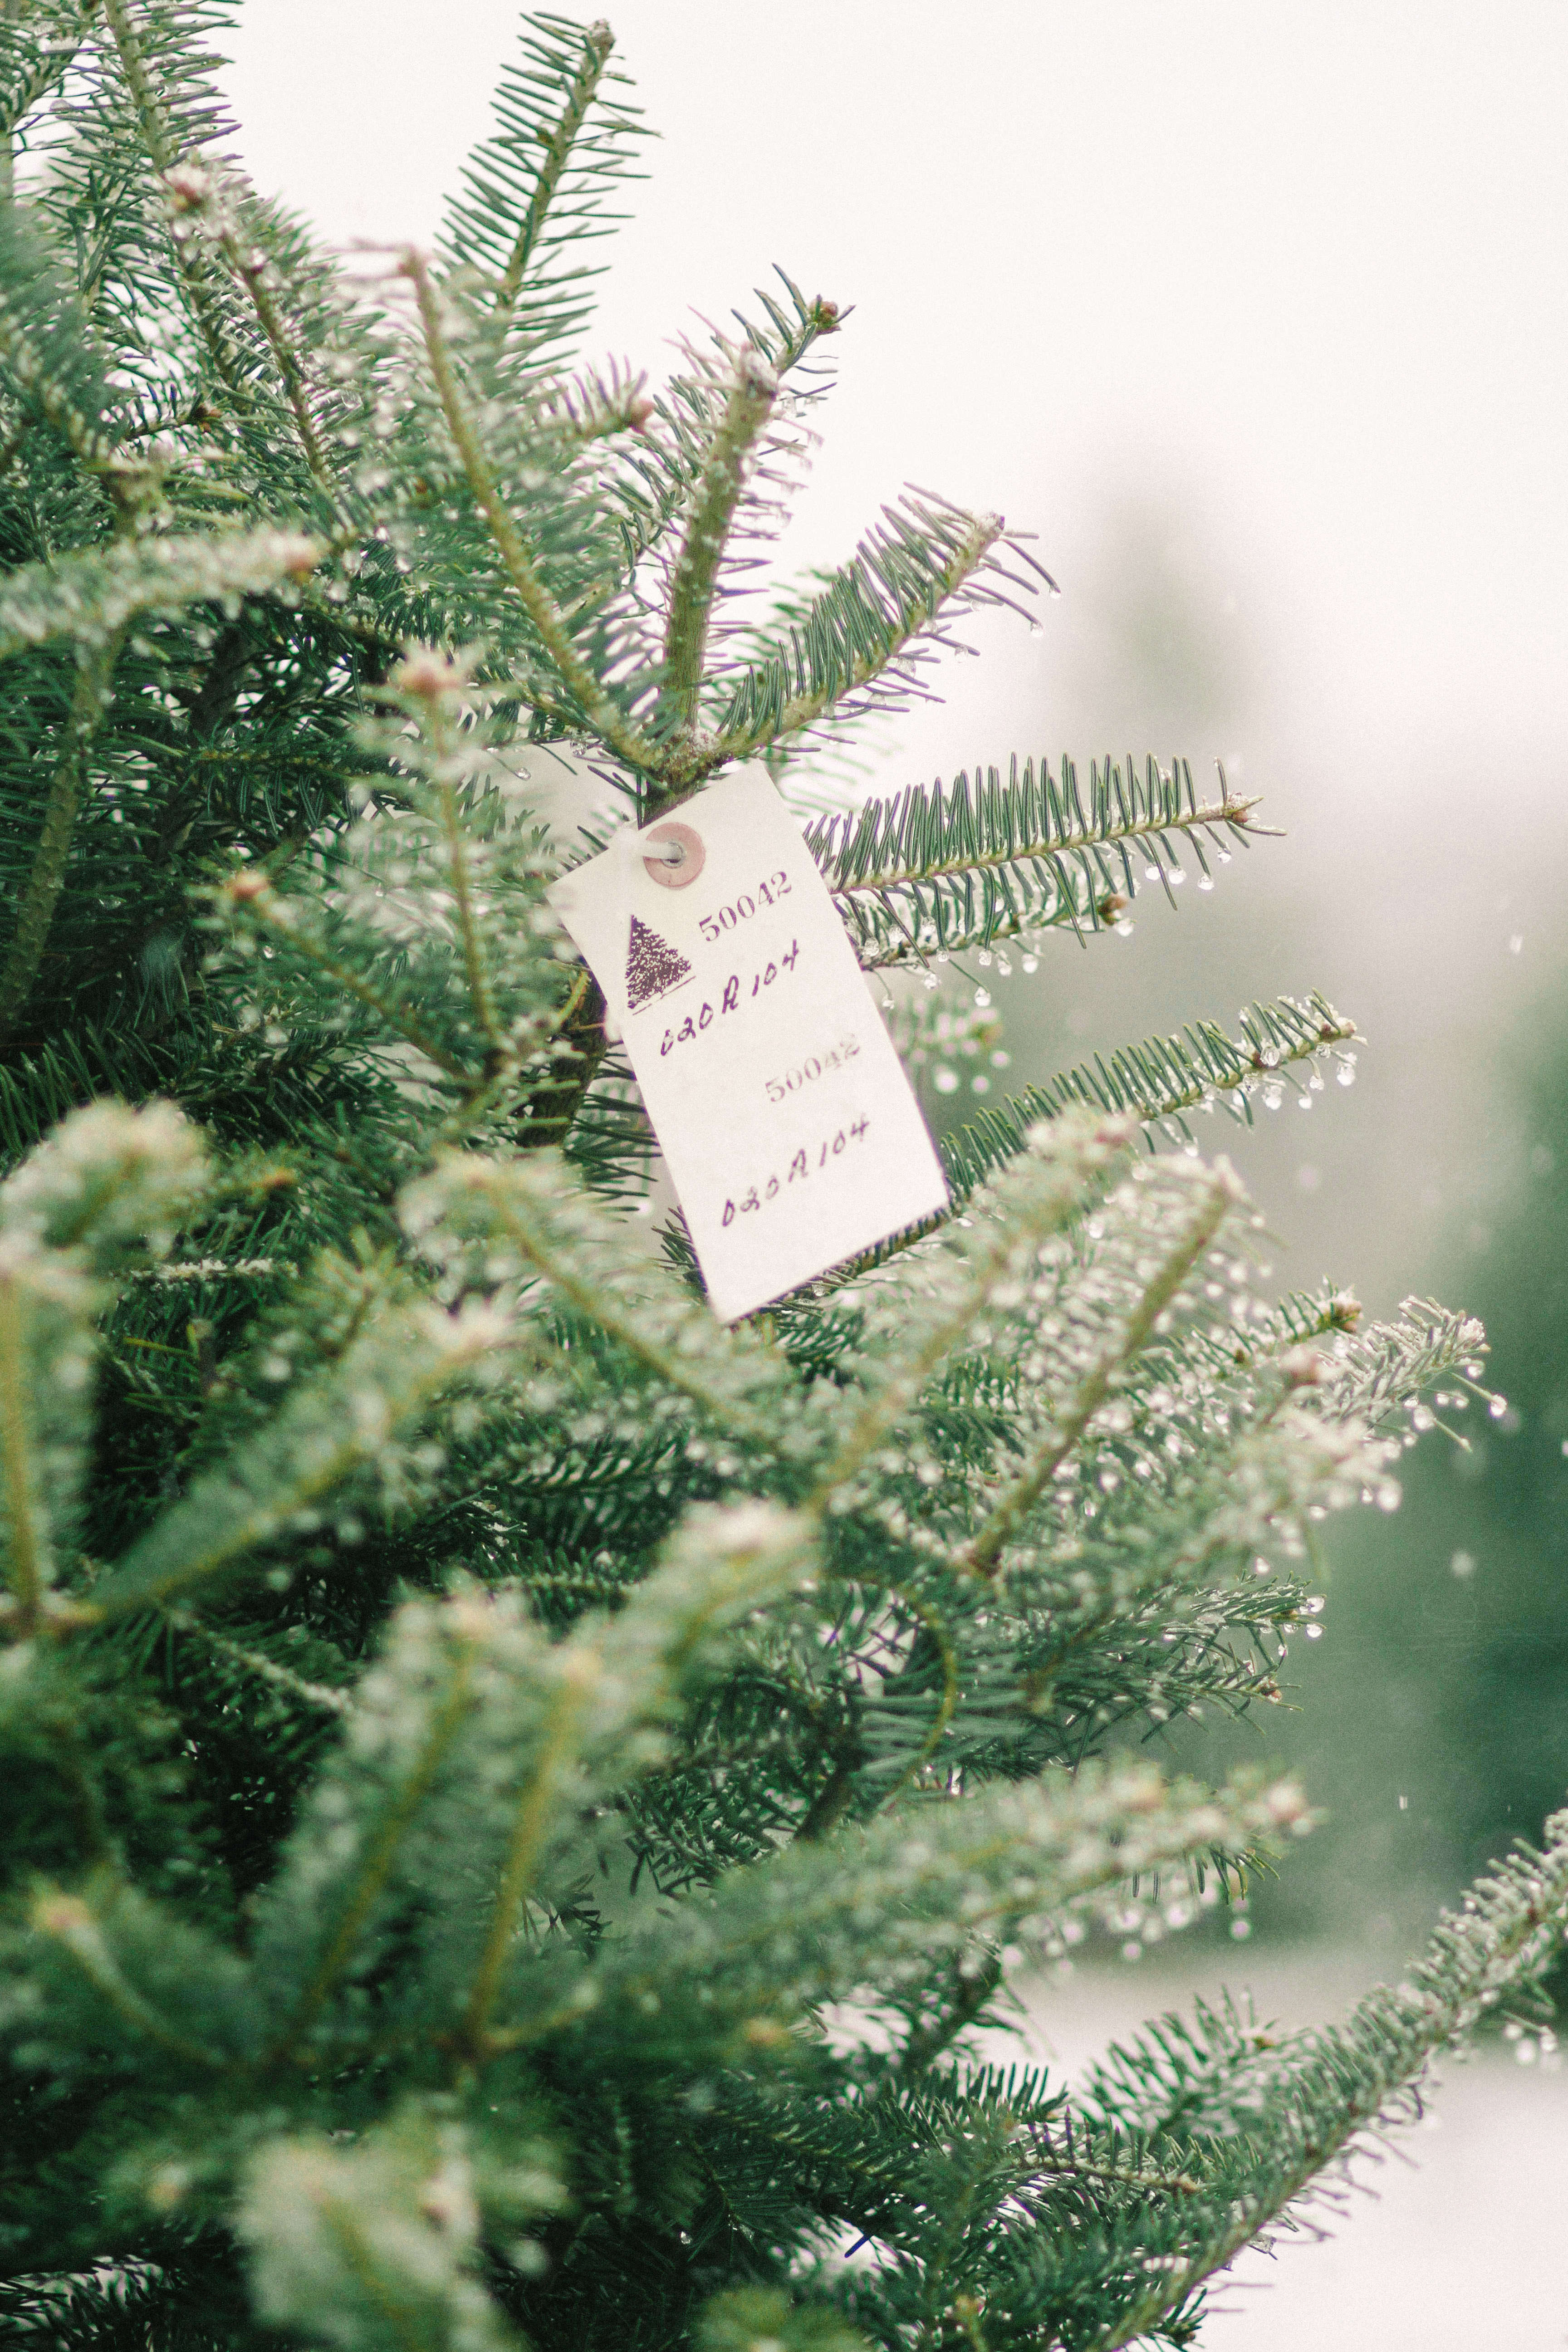 wwwgardenistacomwp contentuploads201504fiel - How To Start A Christmas Tree Farm